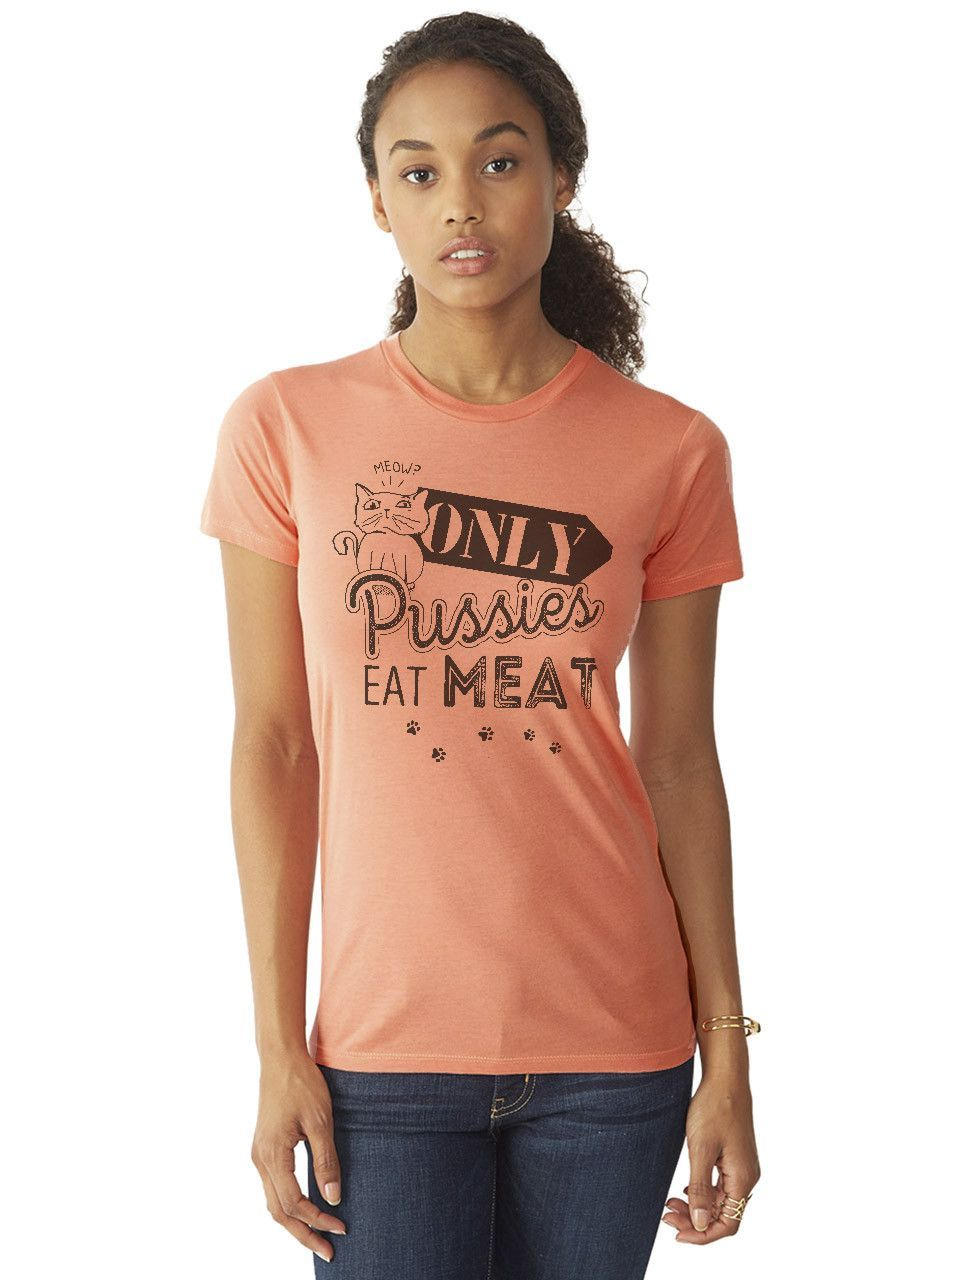 Only Pussies Eat Meat Tee-Shirt (Women)